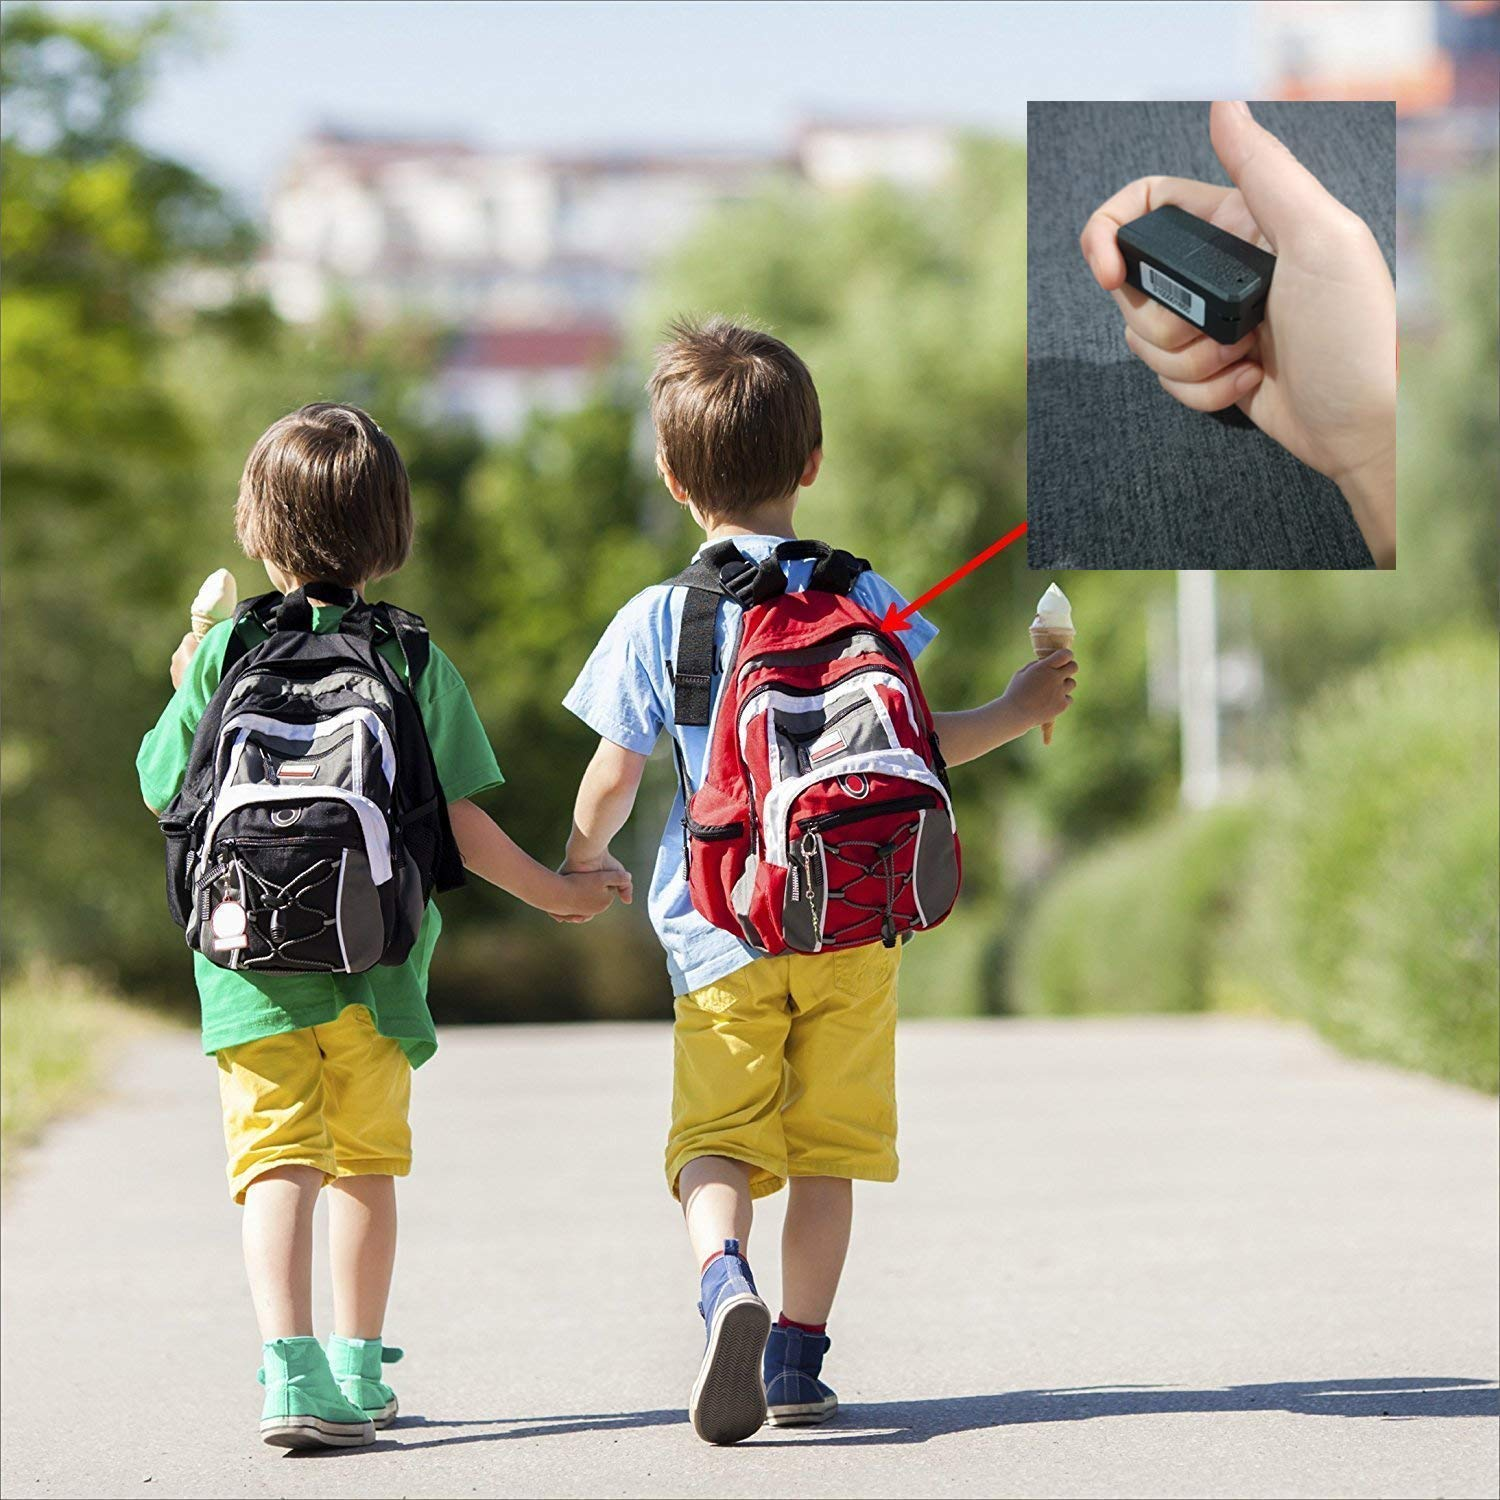 Mini GPS Tracker TKSTAR Anti-Theft Real Time Tracking on App Anti-Lost GPS Locator Tracking Device for Bags Kids Satchels Important Documents Luggage TK901 JUNEO